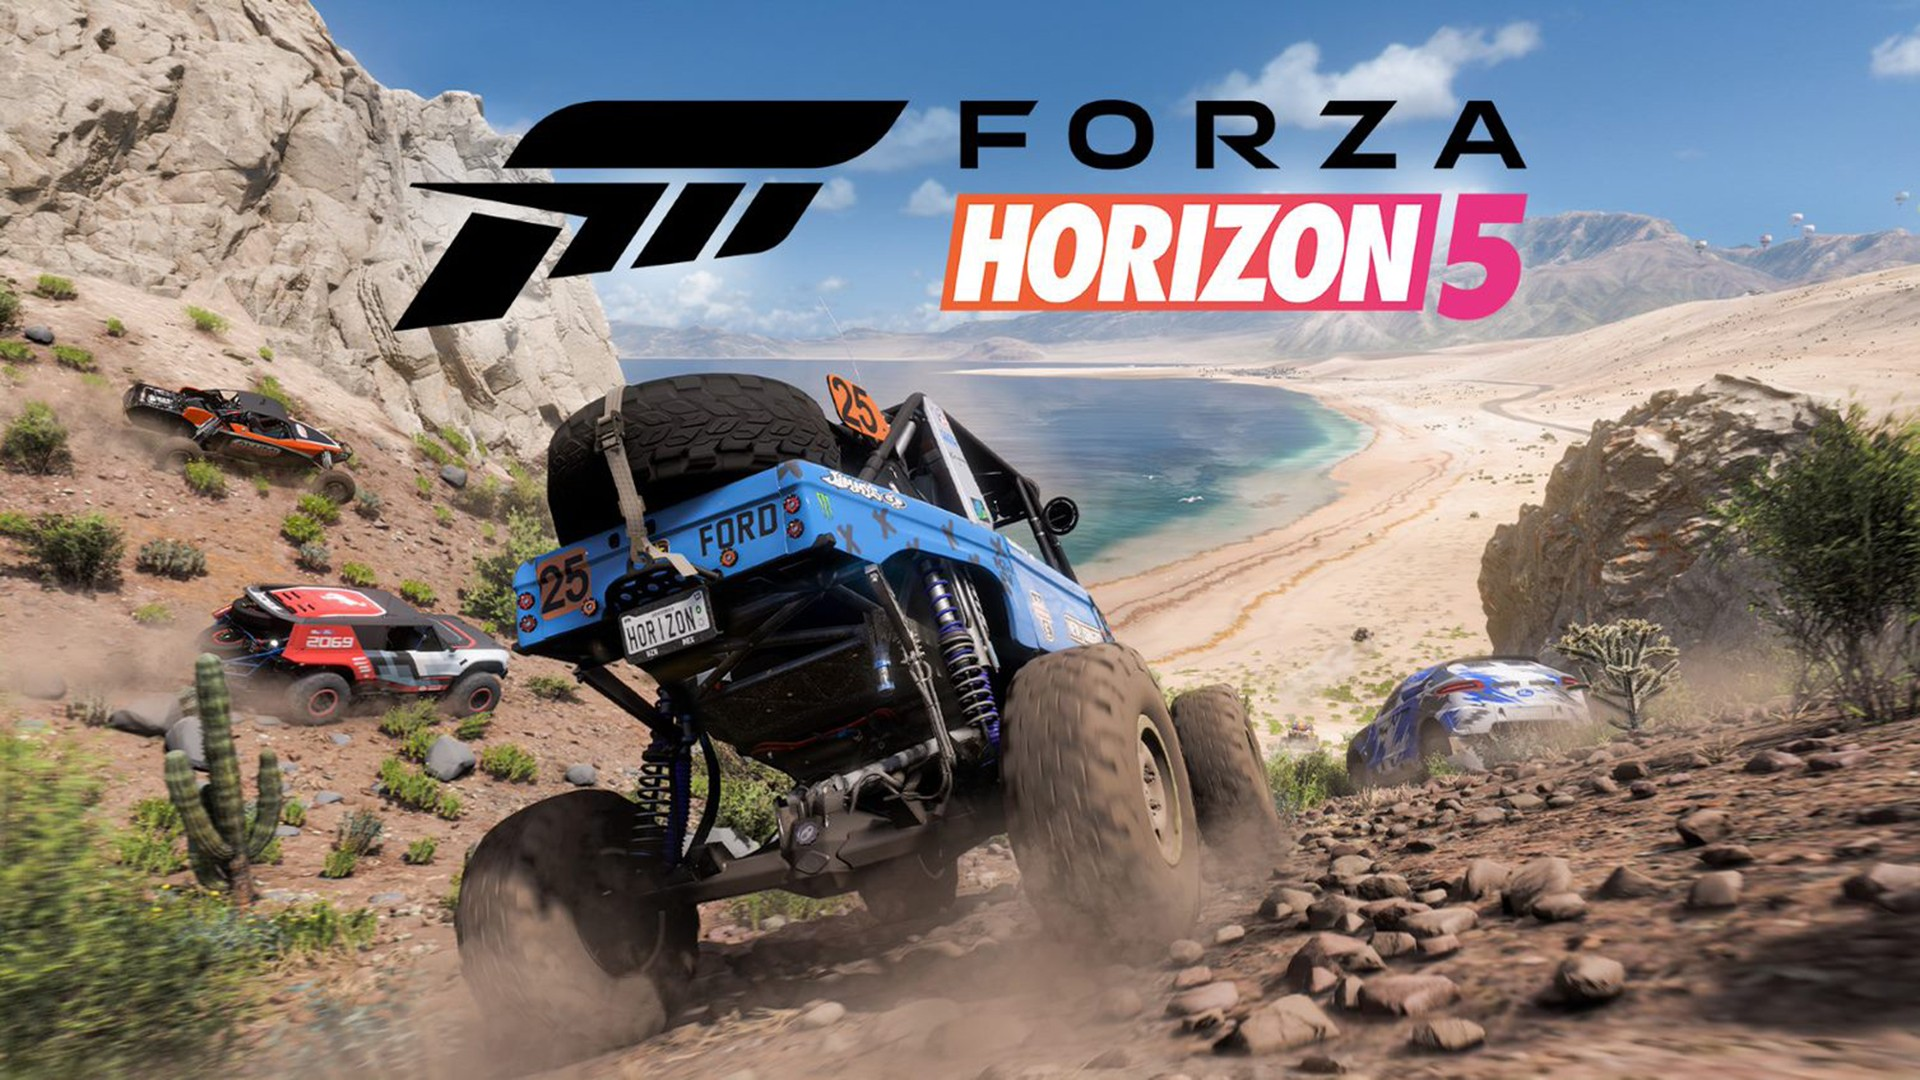 Video For Immerse Yourself in Mexico in Forza Horizon 5 and Experience Our Largest, Most Diverse Open World Ever